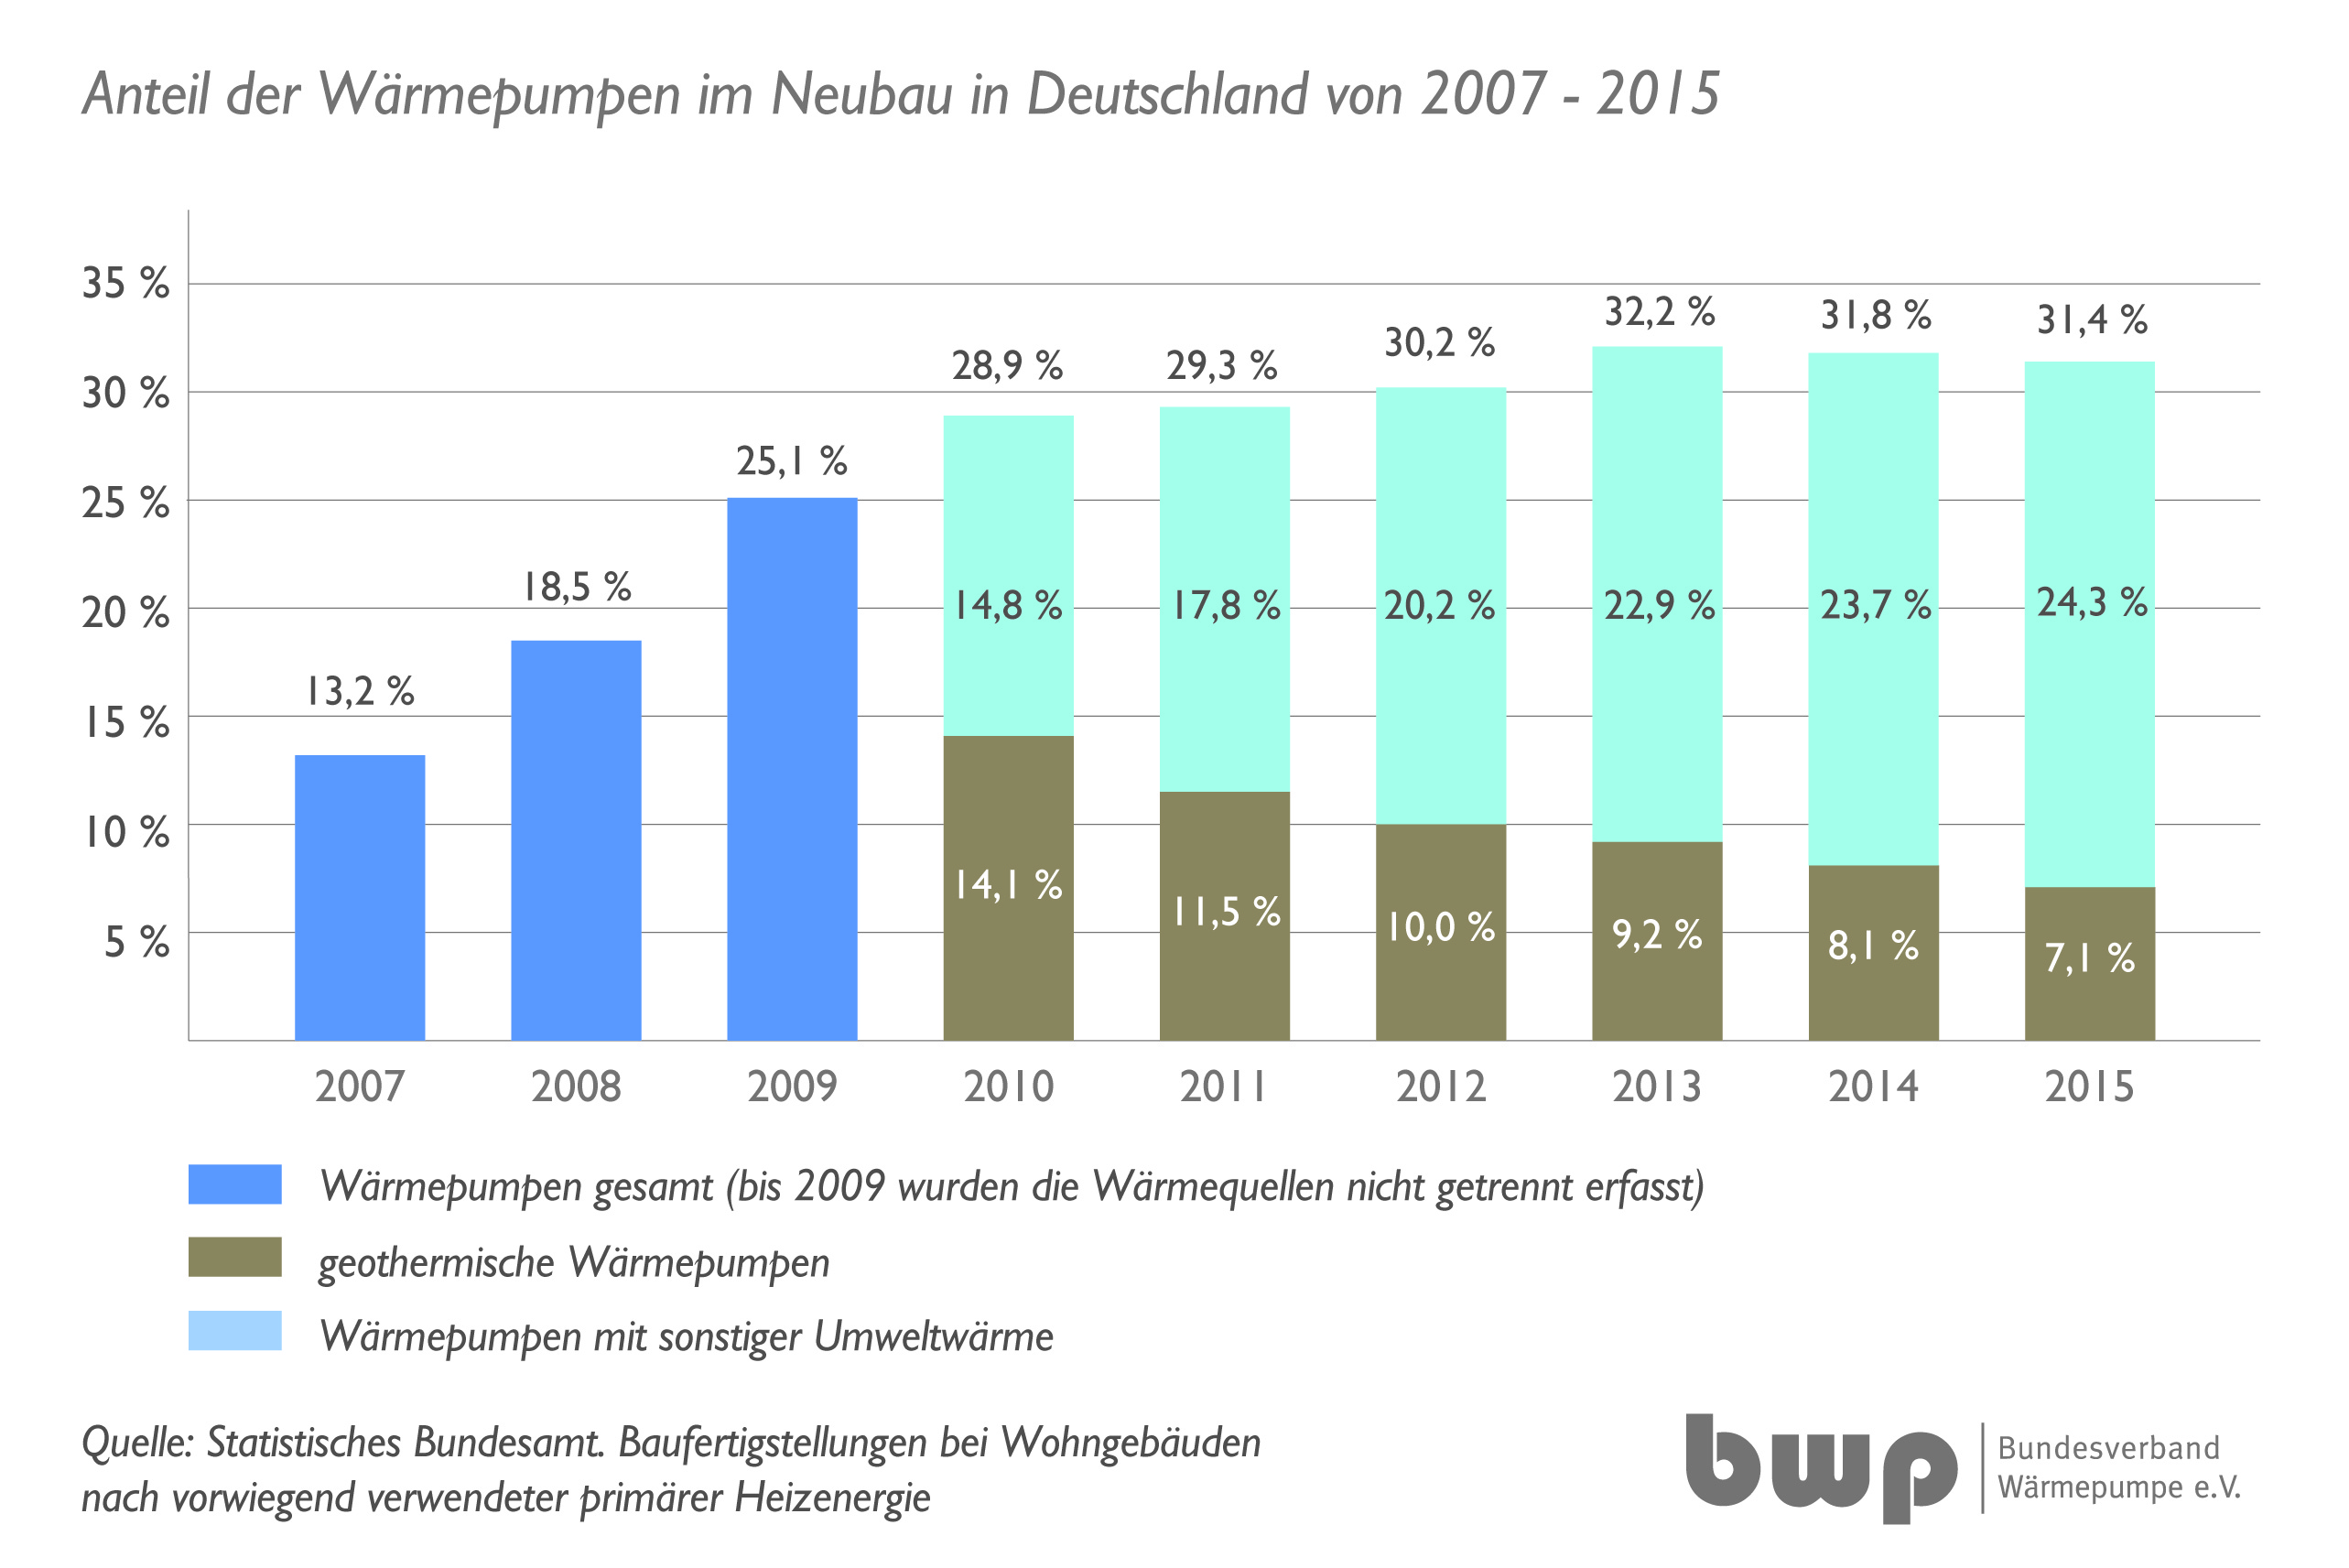 neubau statistik 2015 w rmepumpen anteil bleibt stabil news webseite. Black Bedroom Furniture Sets. Home Design Ideas